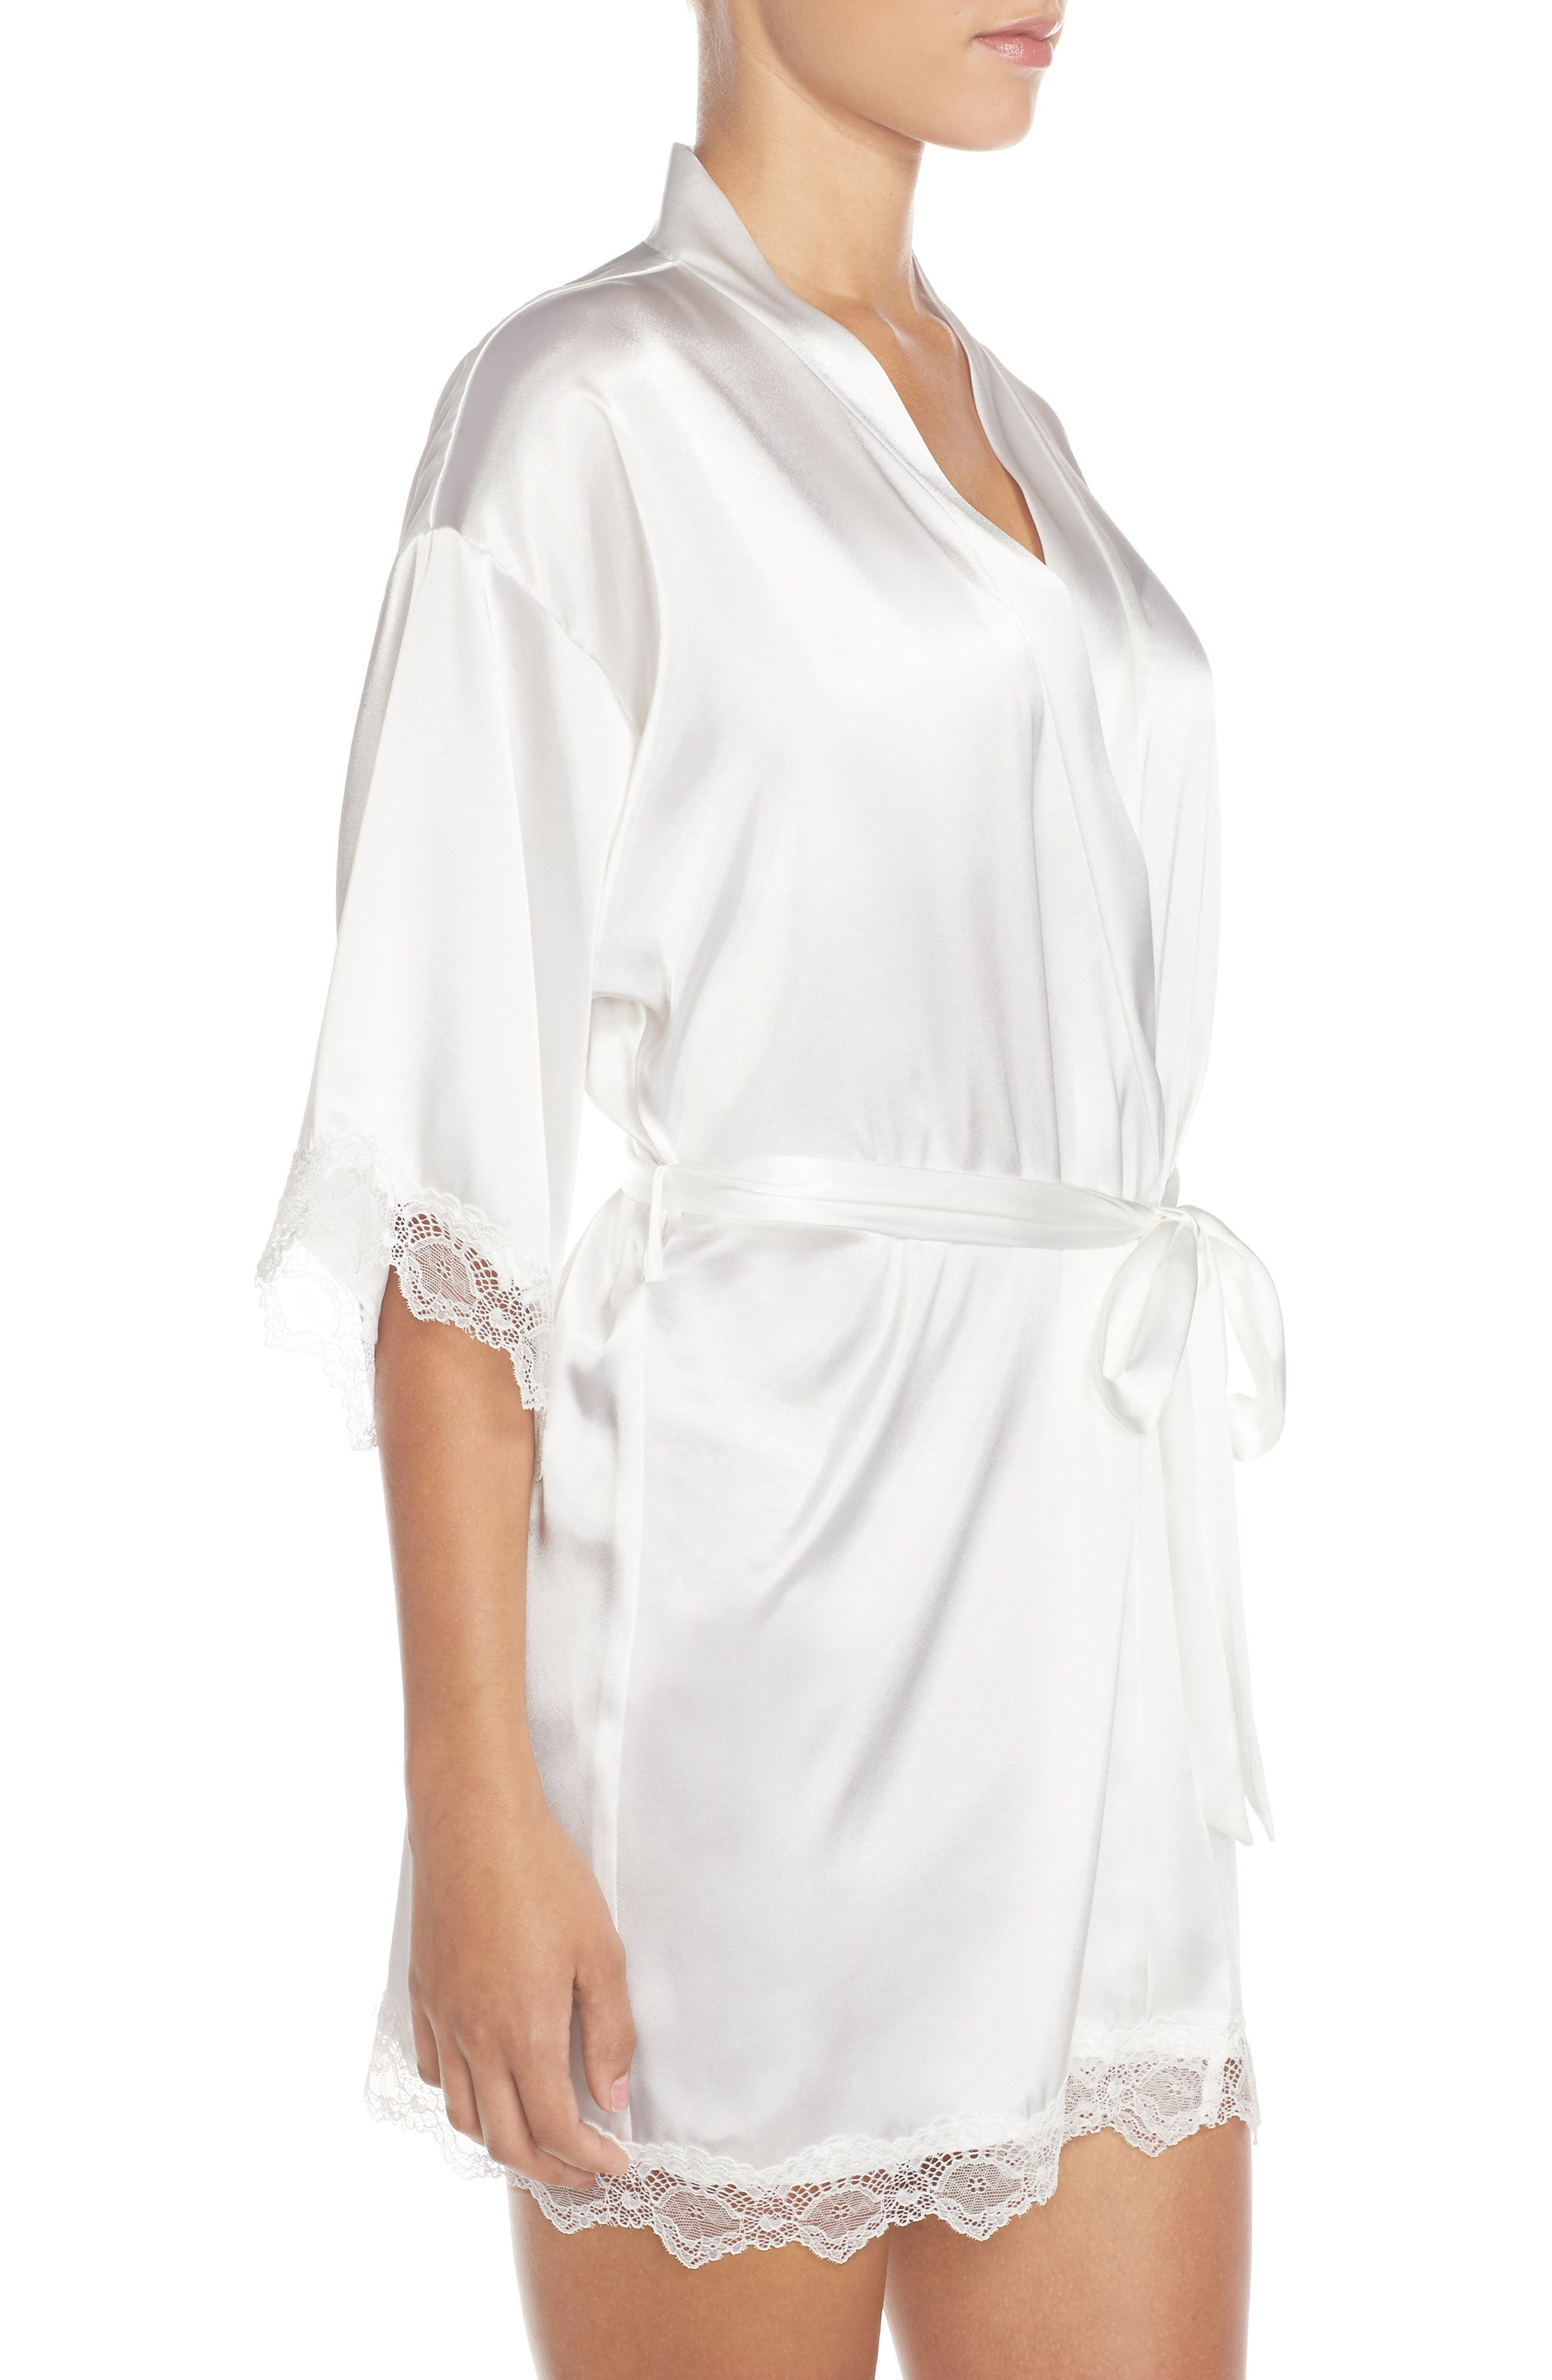 IN BLOOM BY JONQUIL,                             The Bride Short Satin Wrap,                             Alternate thumbnail 3, color,                             WHITE